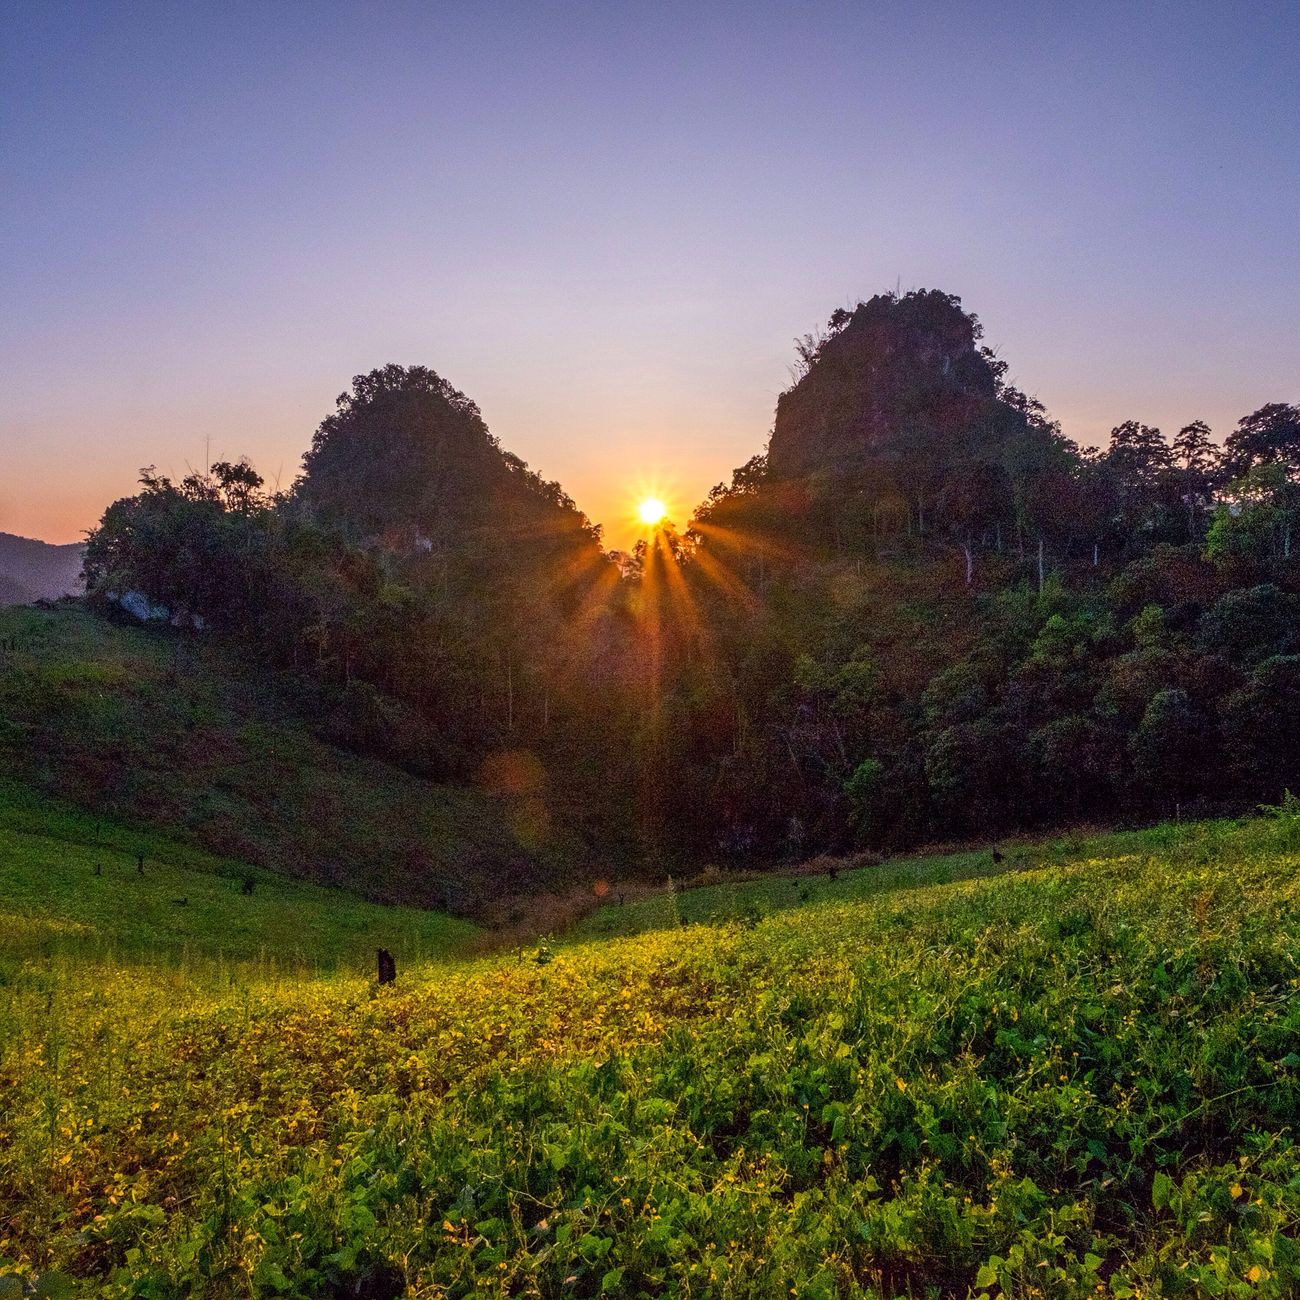 In the mountains of Mae Hong Son, Thailand! Traveling Adventure Club Eye4photography  Thailand Southeastasia EyeEm Gallery Landscape Landscape_Collection Mountains Sunset Sunset_collection